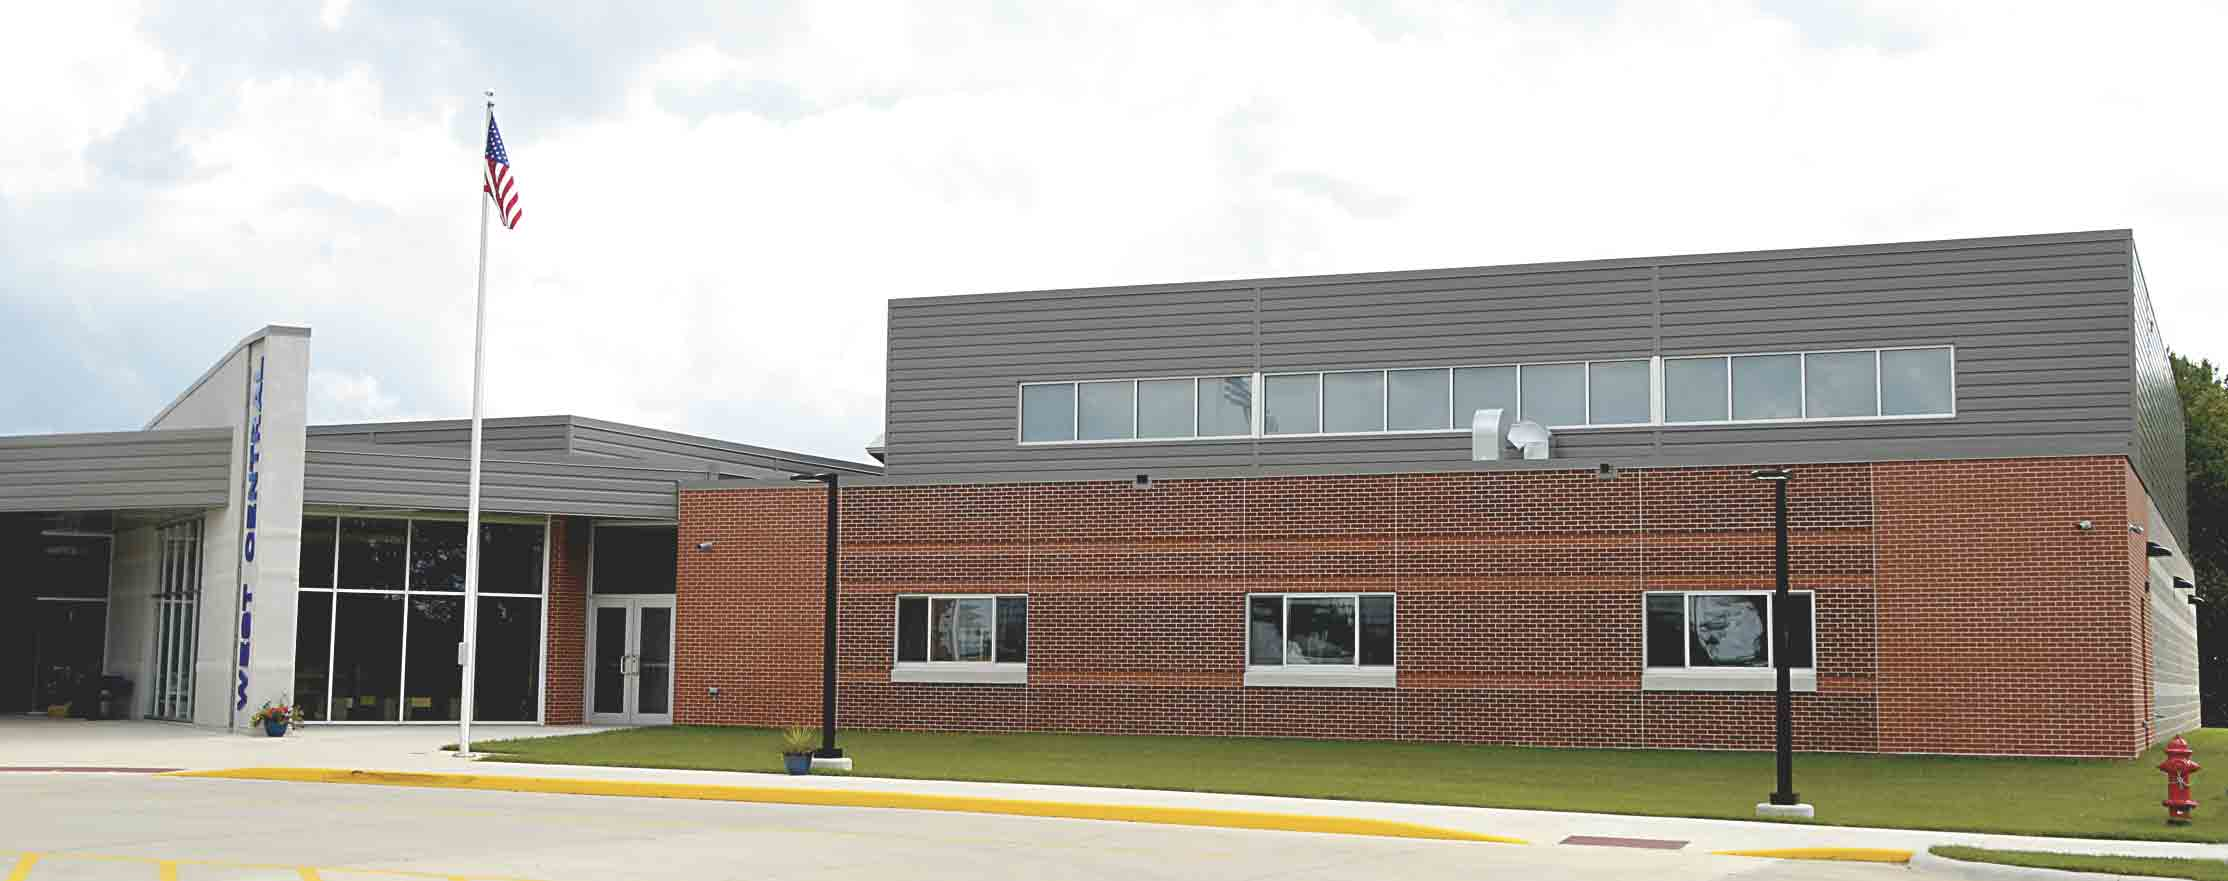 As many rural Iowa school districts do in an effort to be more cost-effective, West Central (pictured) and Starmont have begun to share programs in an effort to offer more educational and extracurricular activities to their students. Currently, the two schools share baseball and wrestling....